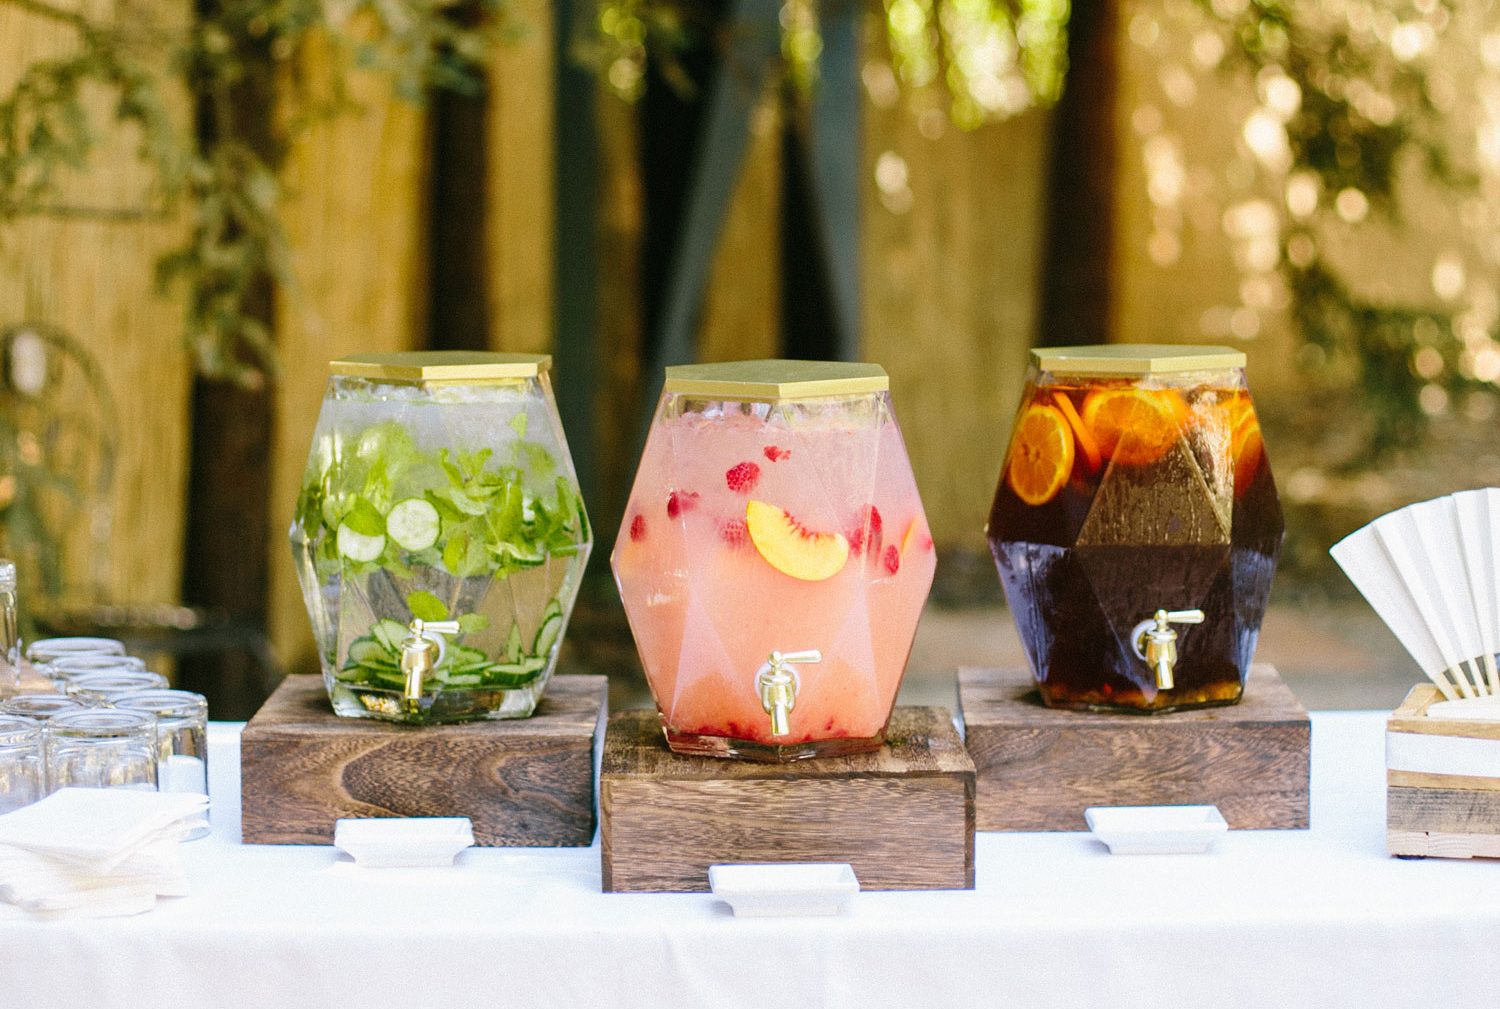 infused water, juice, iced tea for before the wedding ceremony